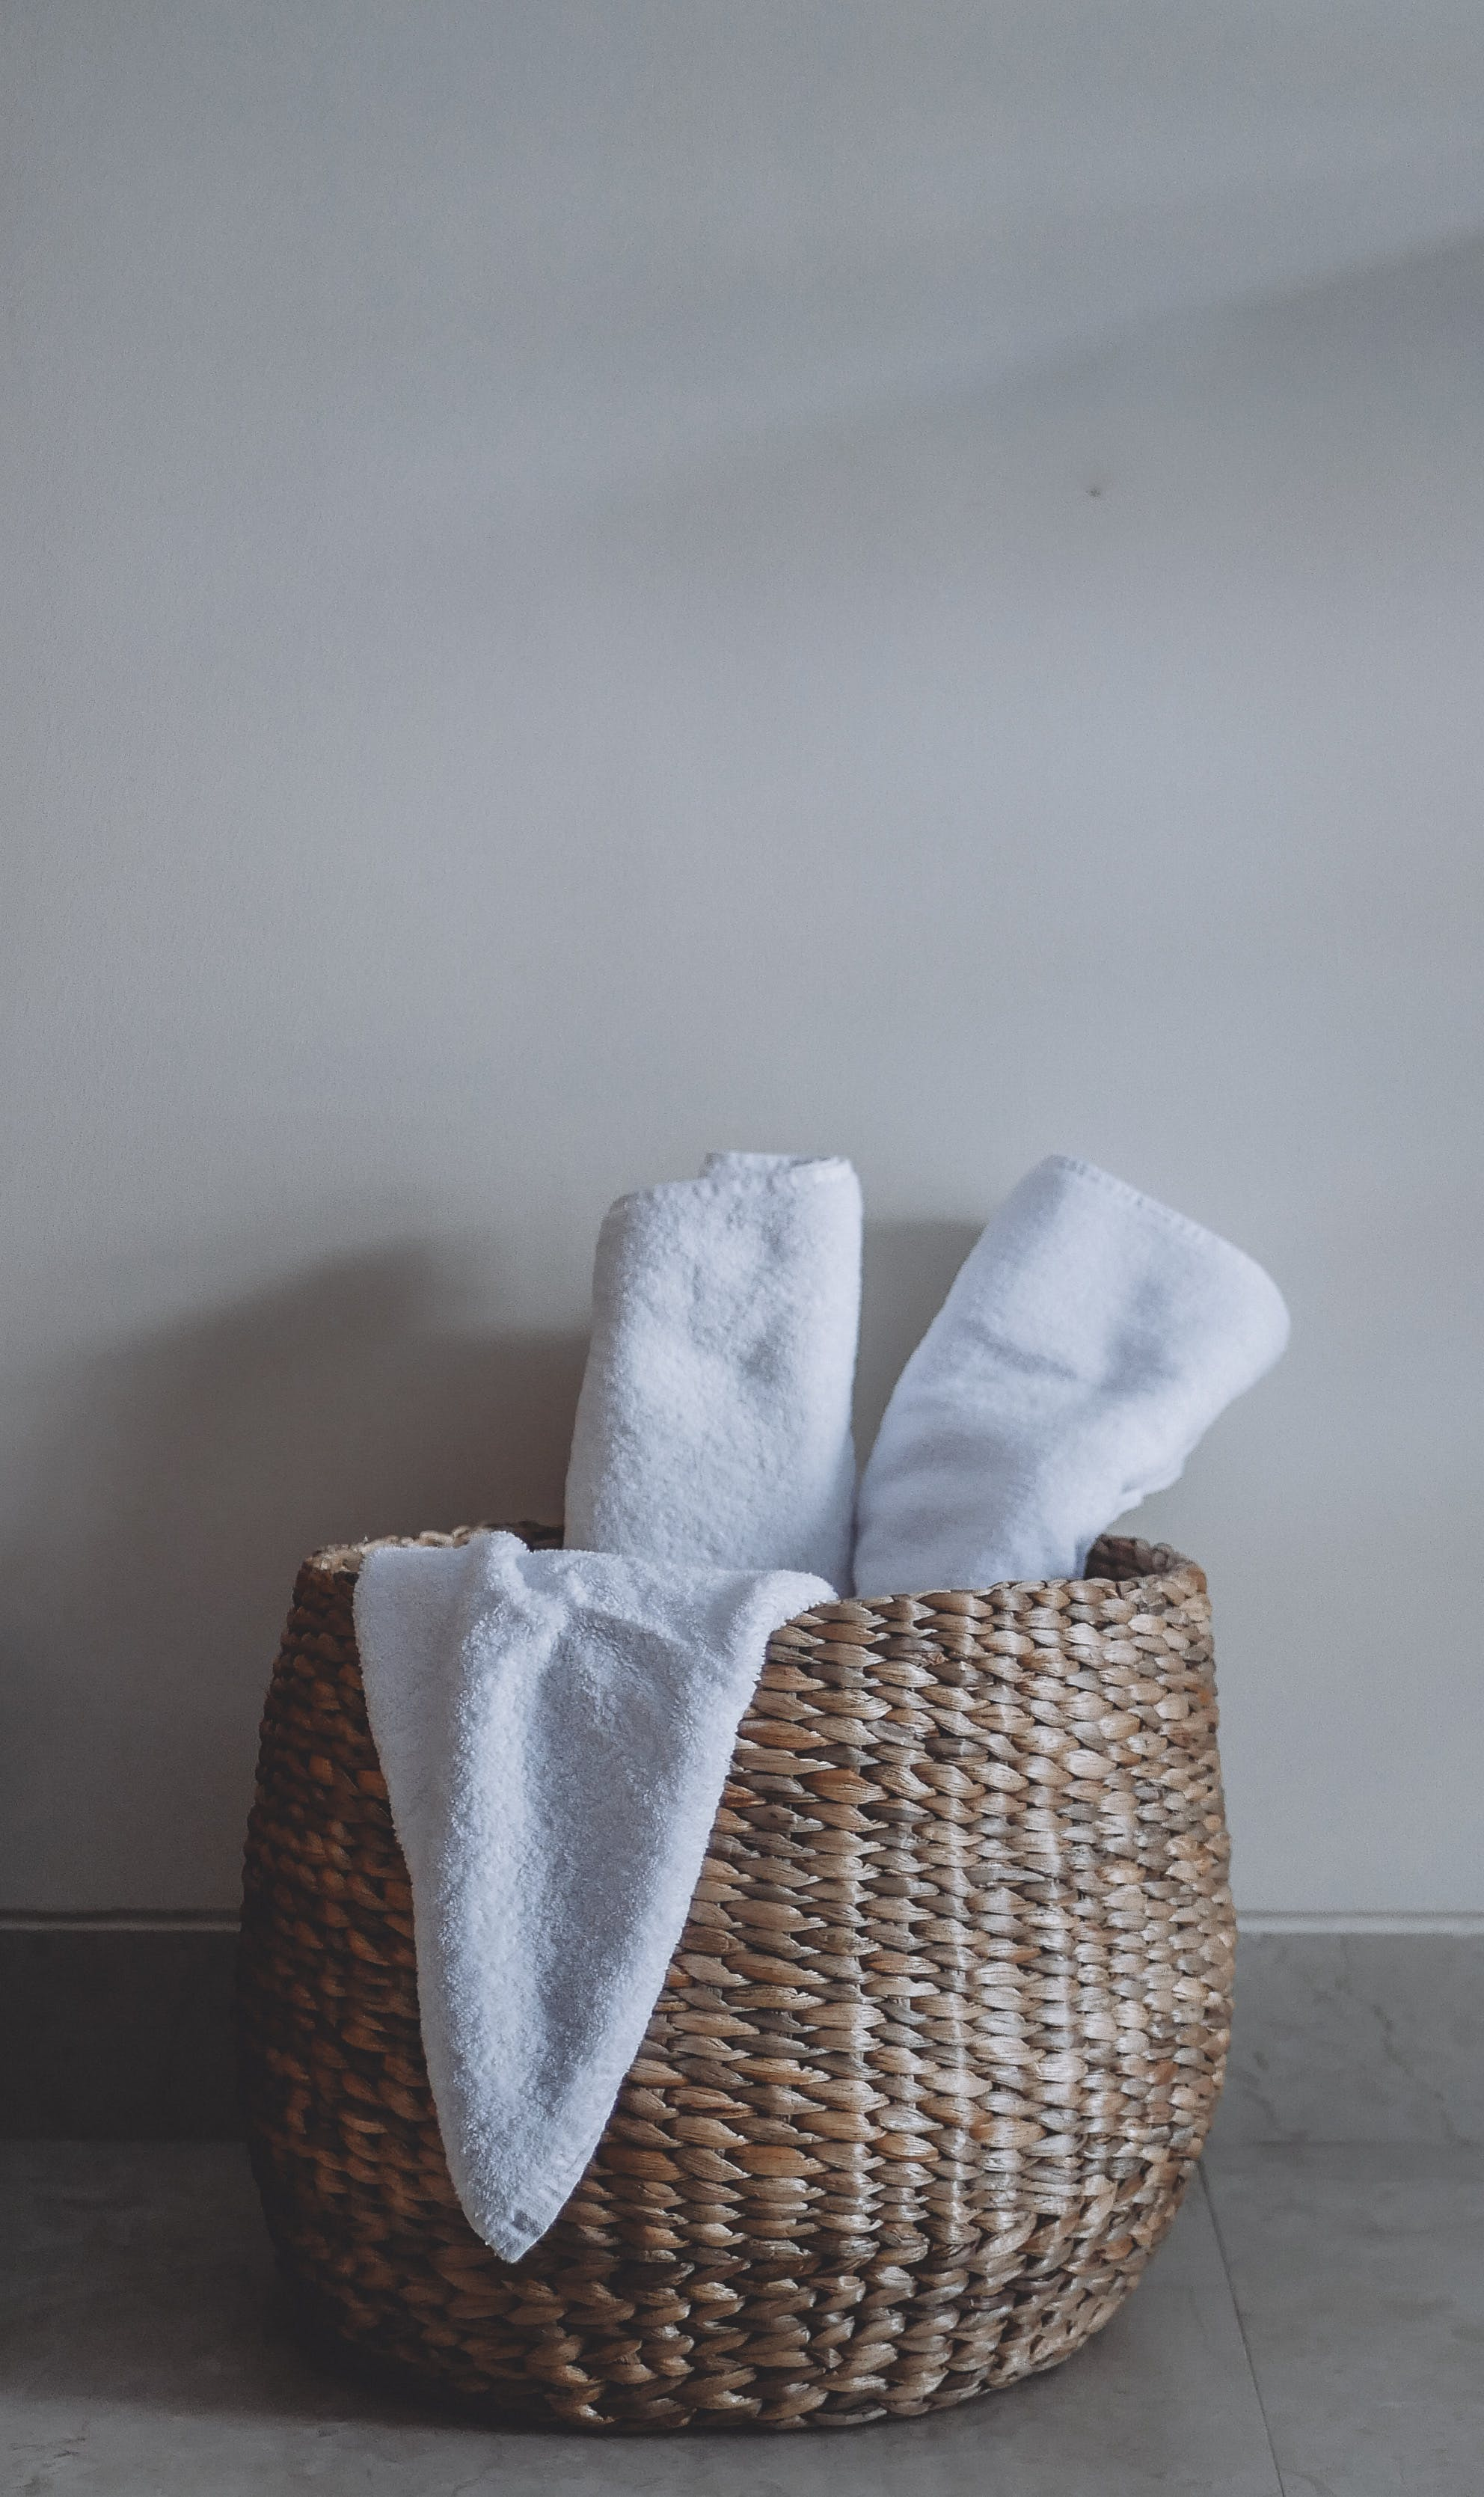 Free stock photo of bath towels, linen, natural basket, towel